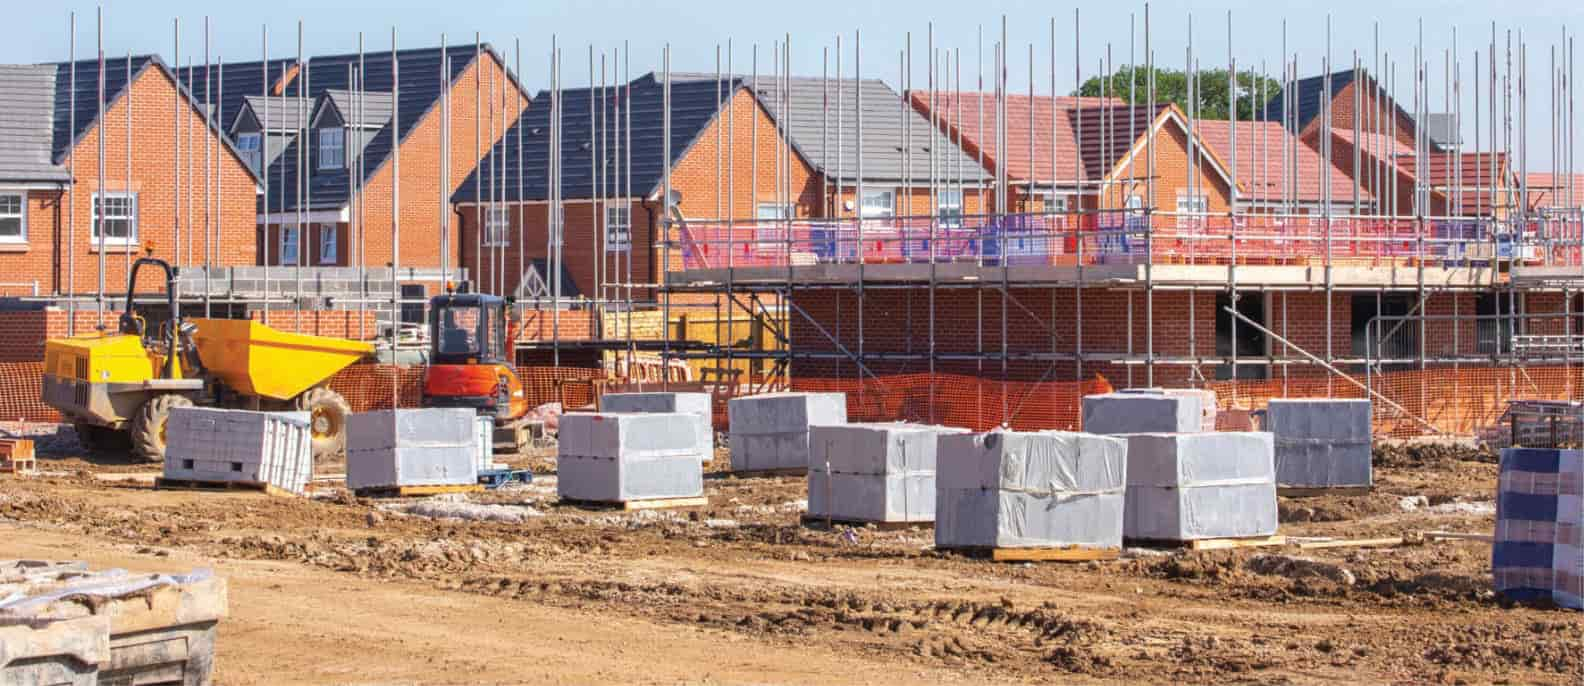 Partially built new housing development